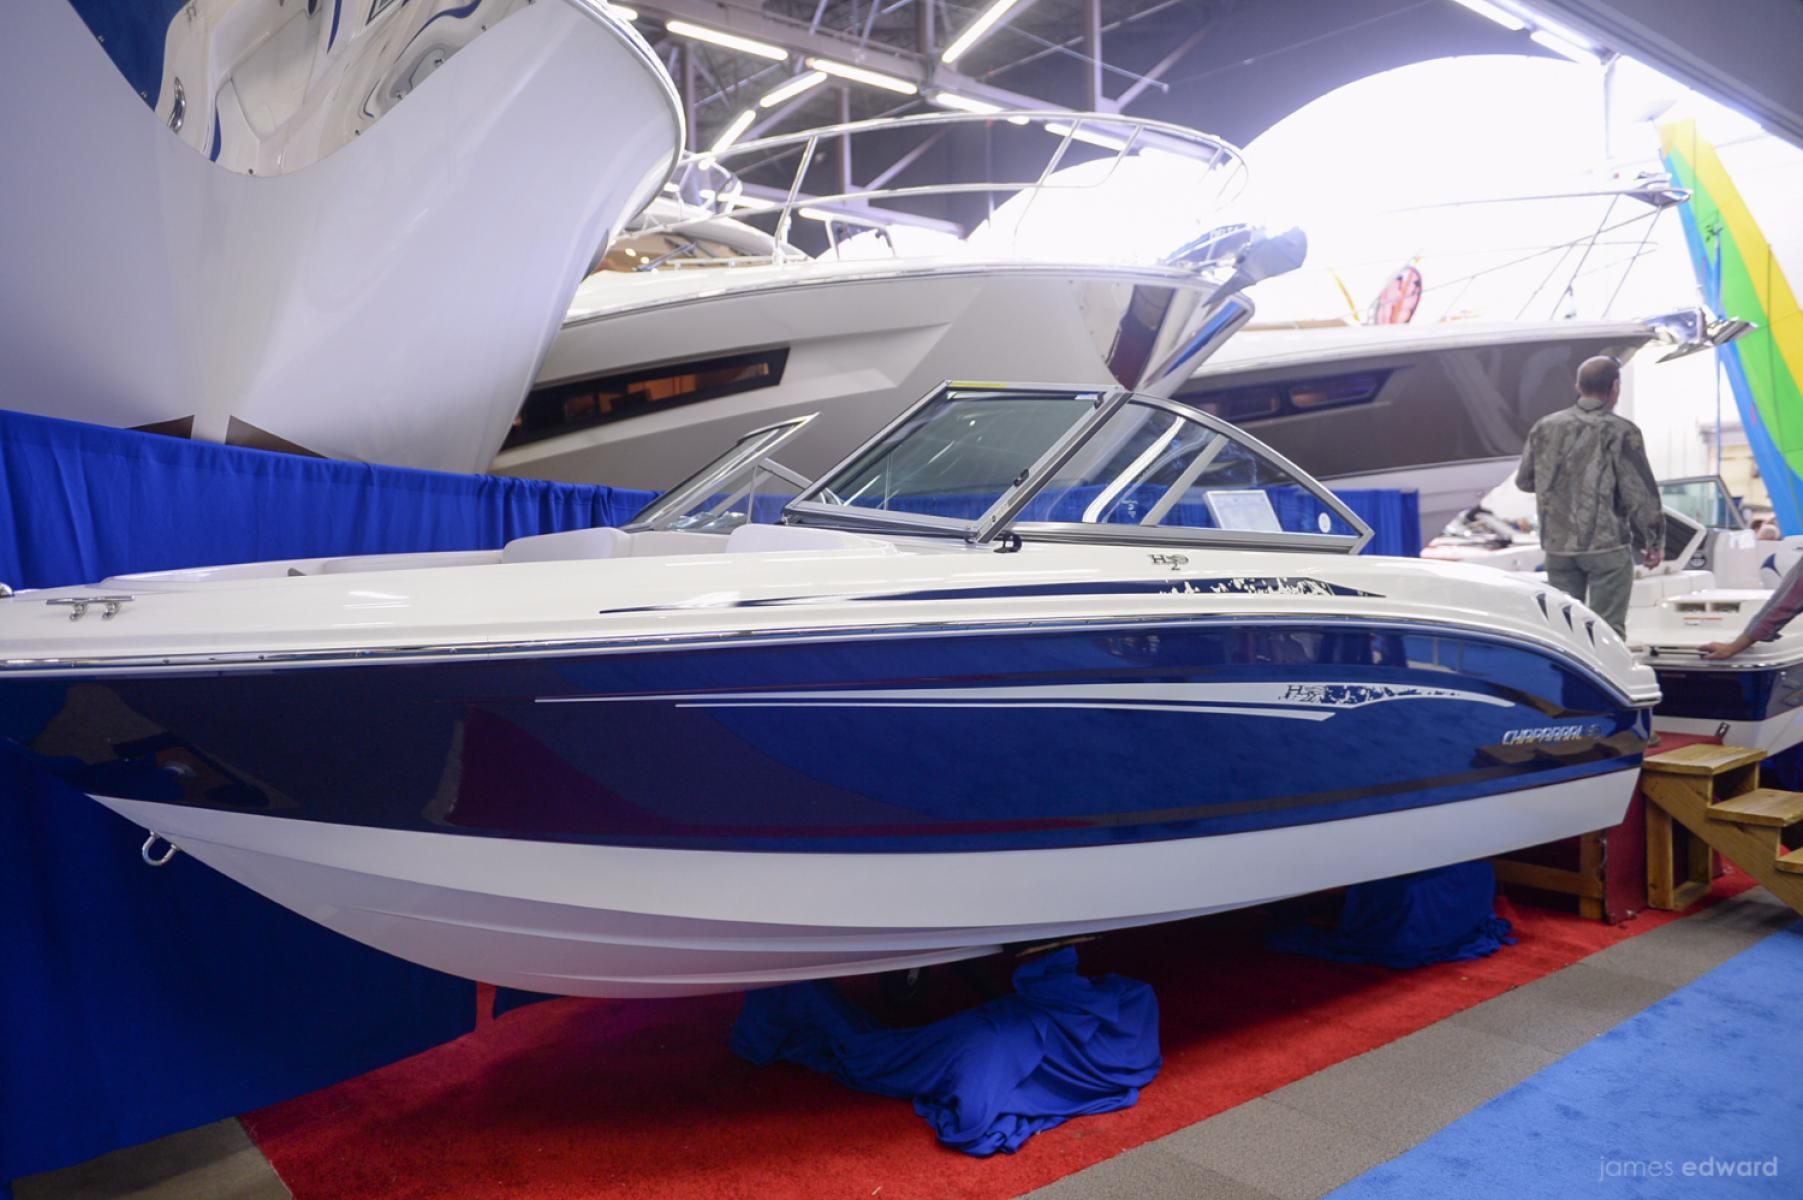 2017 DFW Summer Boat Expo Arrives in July